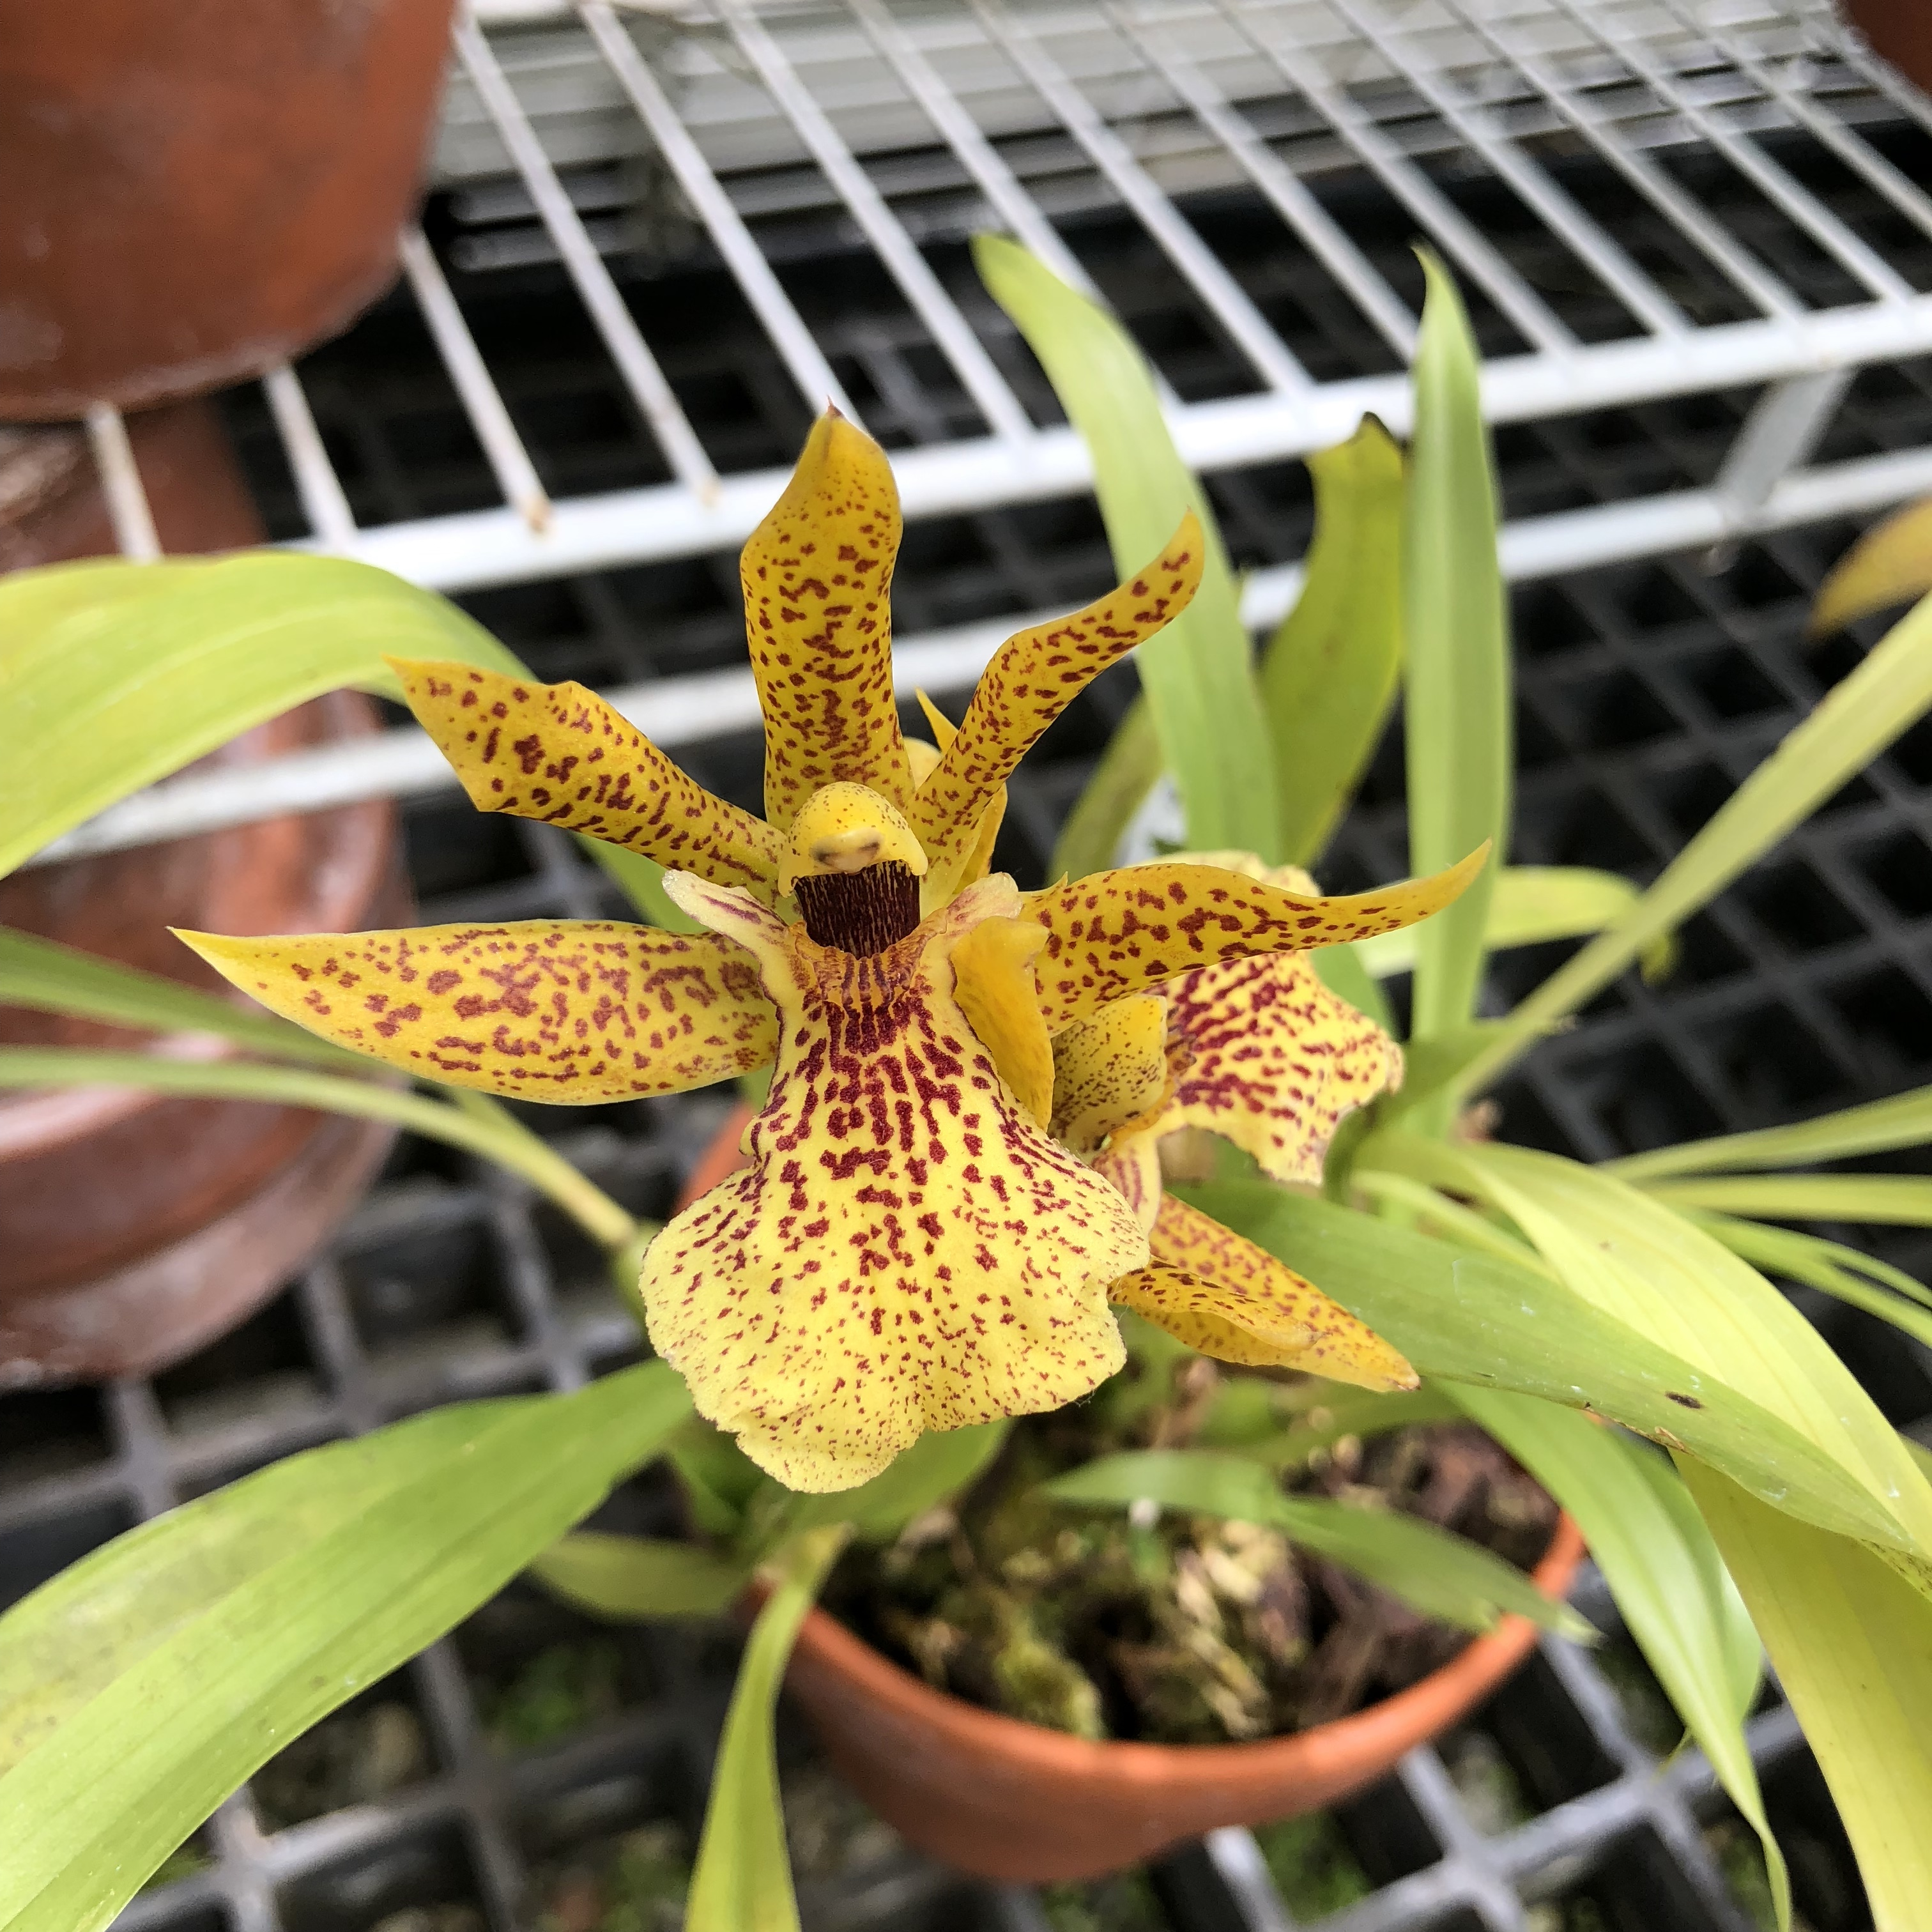 x Propetalum Mathina g. 'Elizabeth' (...not sure if there's more on the tag after that)